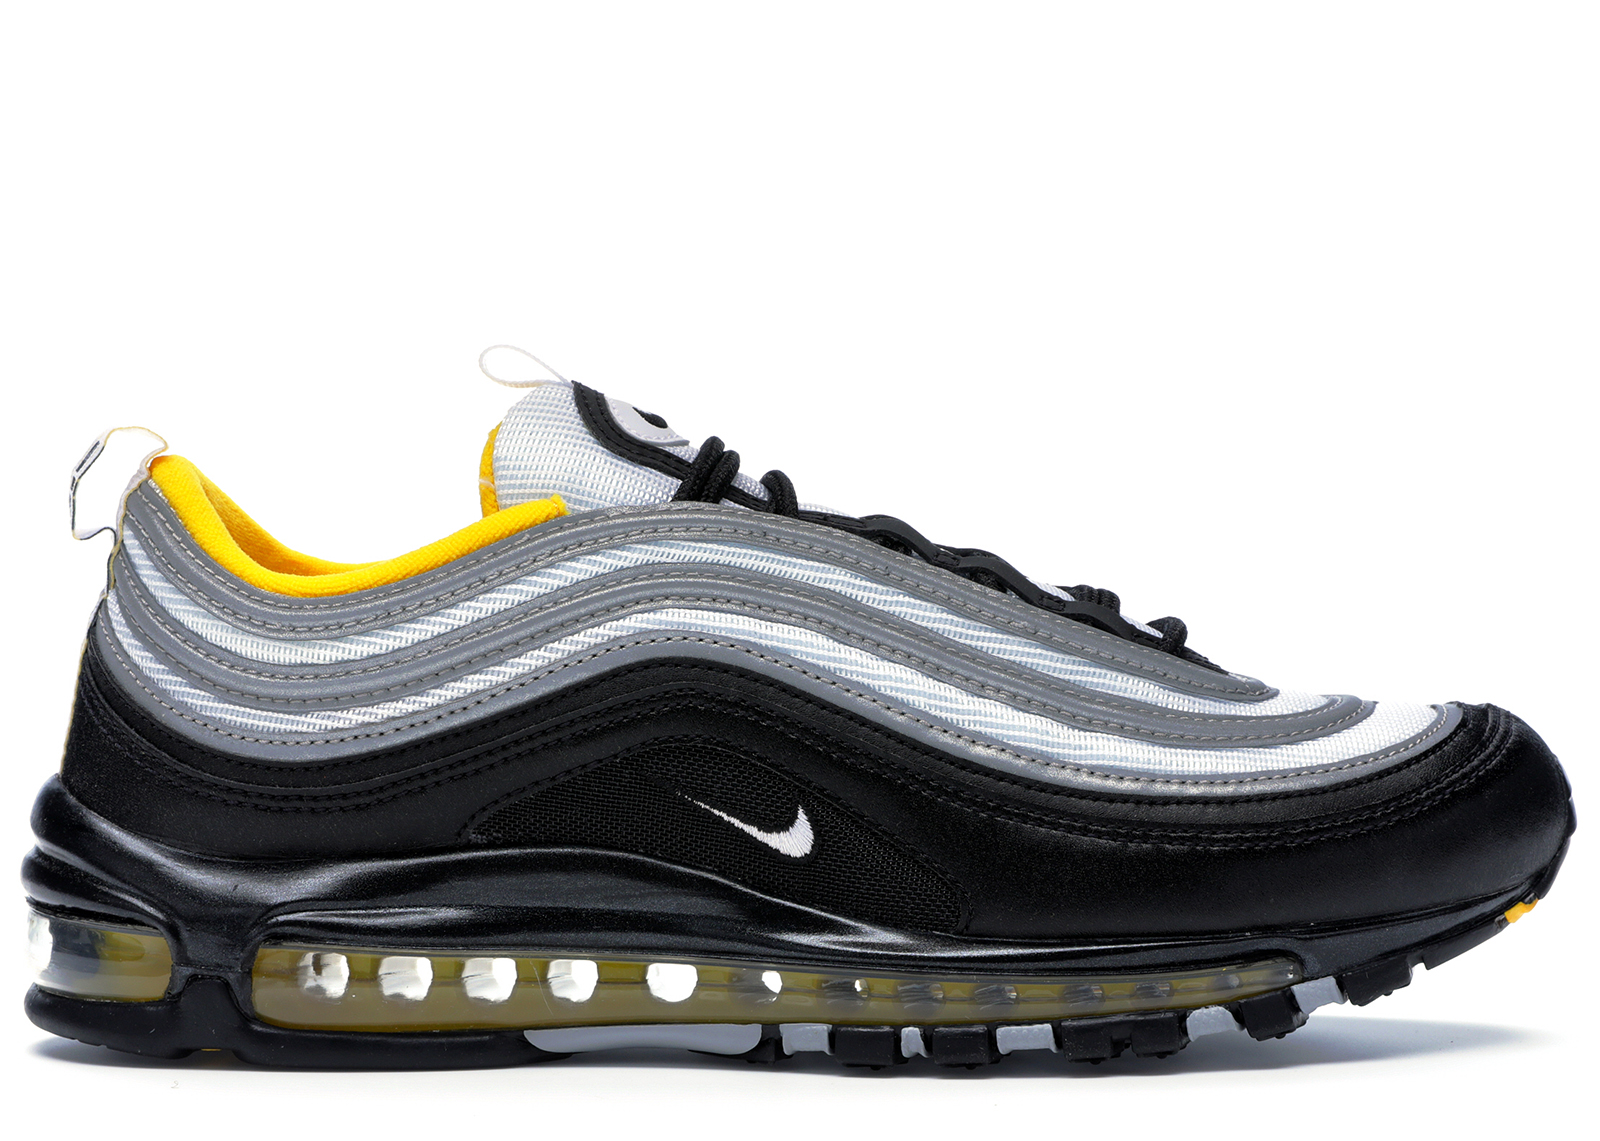 Nike Air Max 97 Steelers (2018